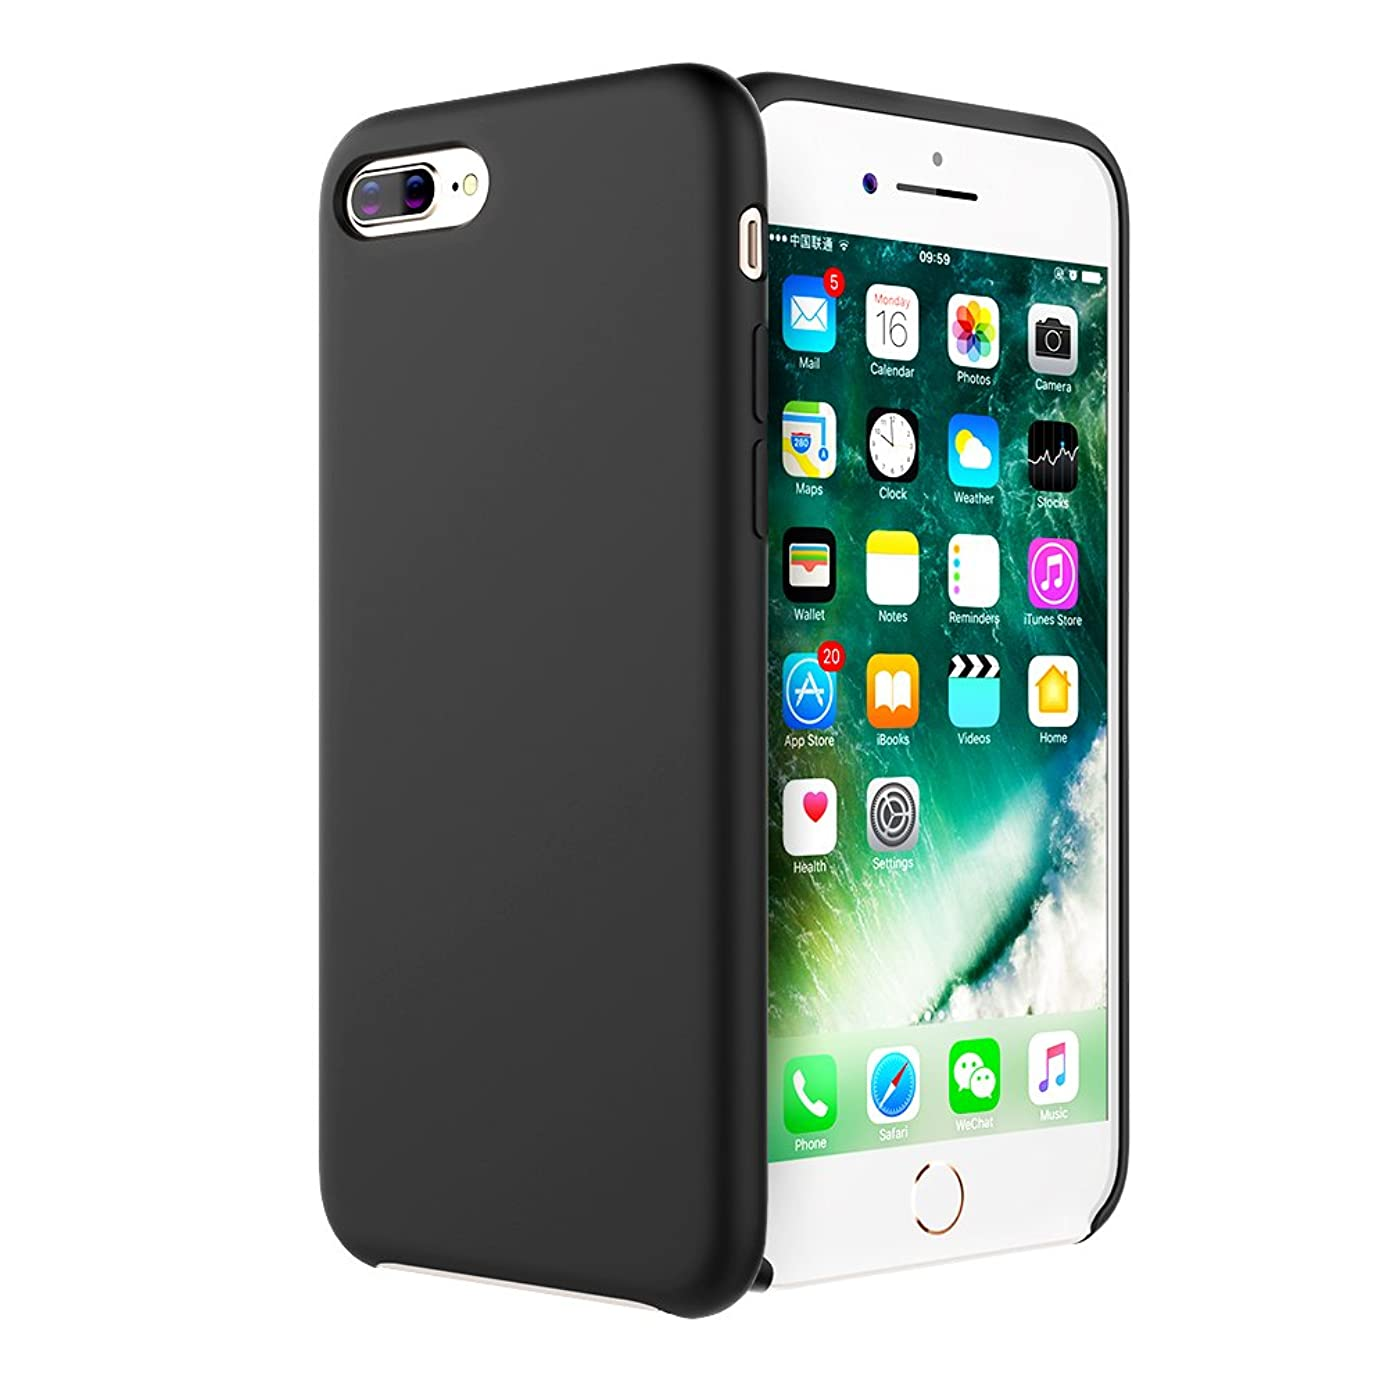 iPhone 8 Plus case, Moleboxes iPhone 7 Plus case Silicone Slim Fit Rugged Case Heavy Duty Protection Shockproof Soft Touch Drop Protection Anti-Scratch (Black)